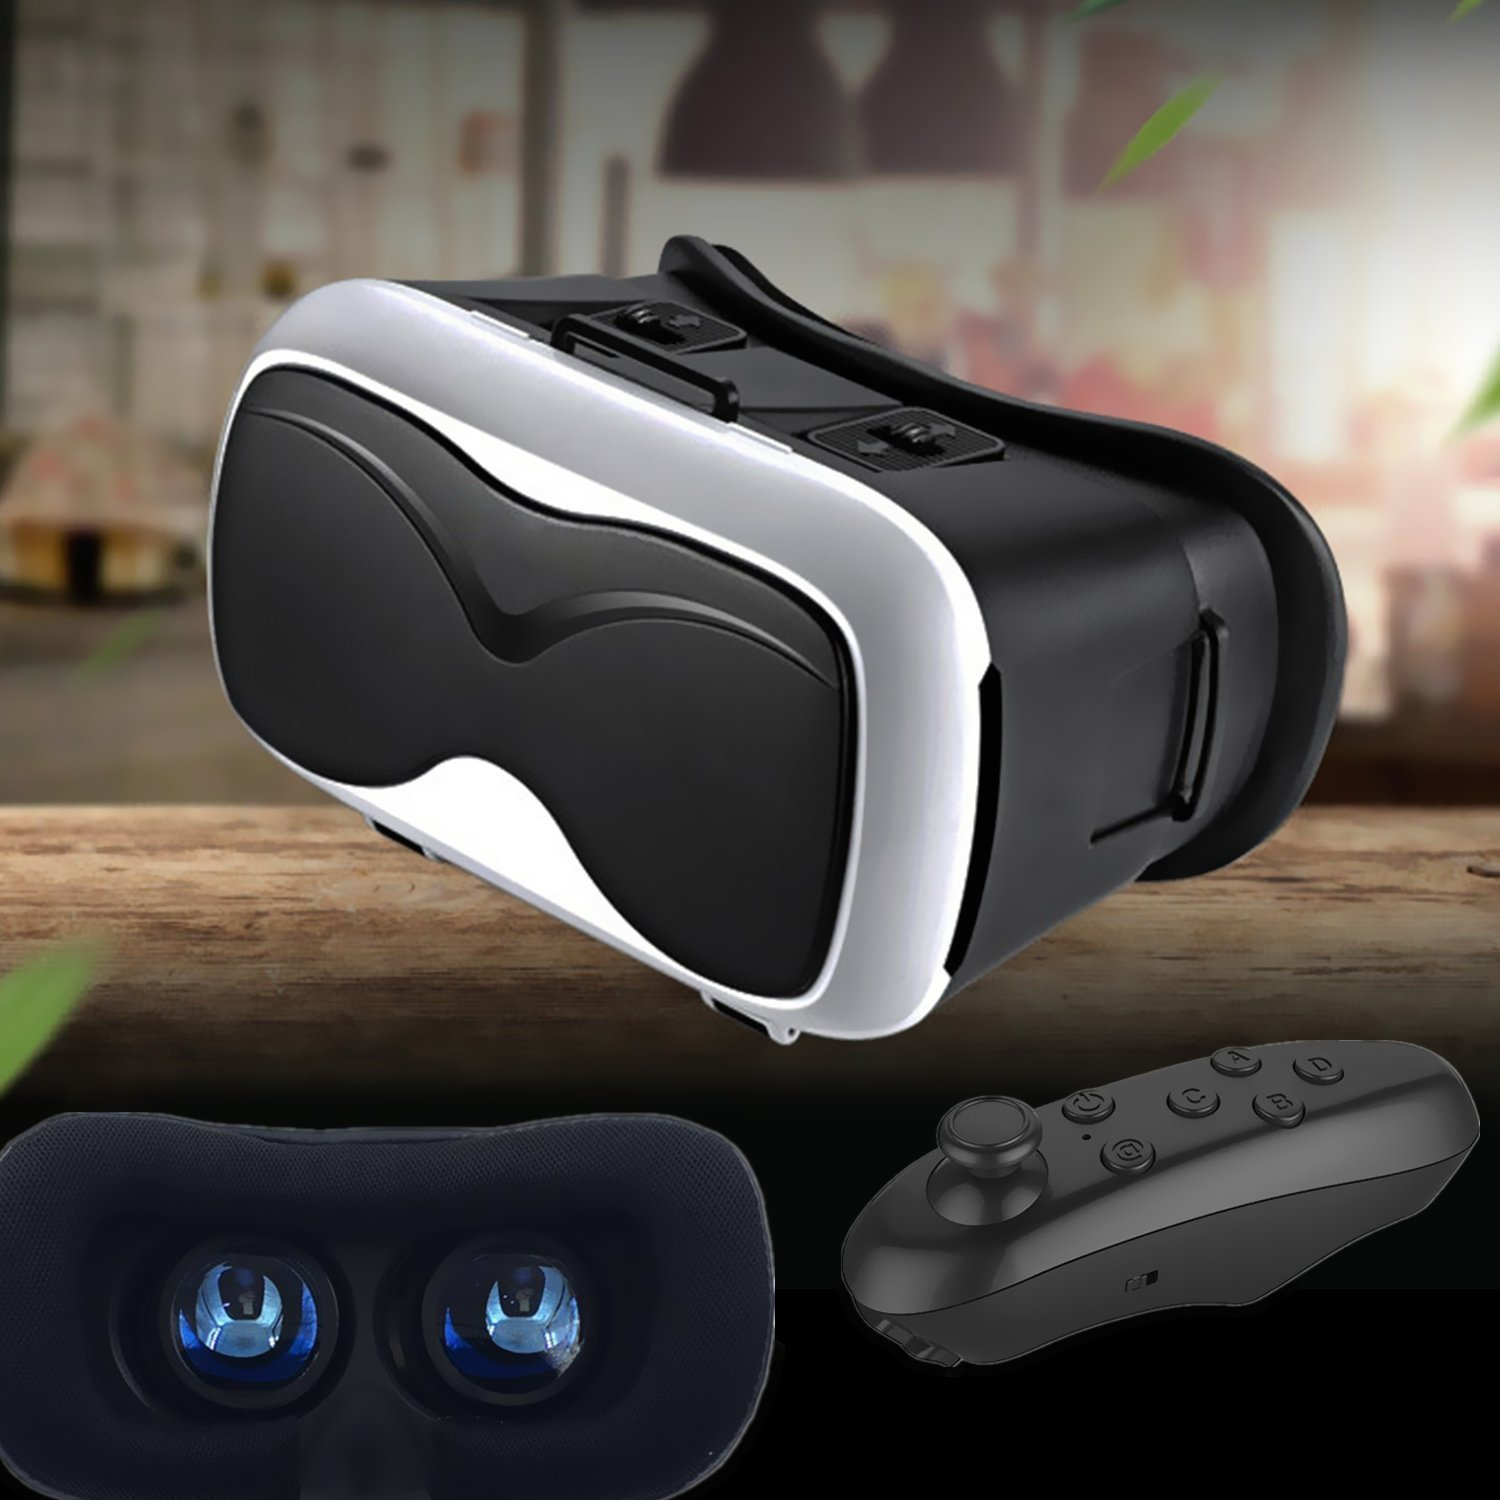 3D VR Glasses Headset, Tsanglight Virtual Reality Glasses with Remote Controller for IOS iPhone 7/6/6S Plus, Android Samsung Galaxy S7 Edge/S7/S6/S5/A5/A3 2016 & Other 4.7-6.5inches Cellphones- White